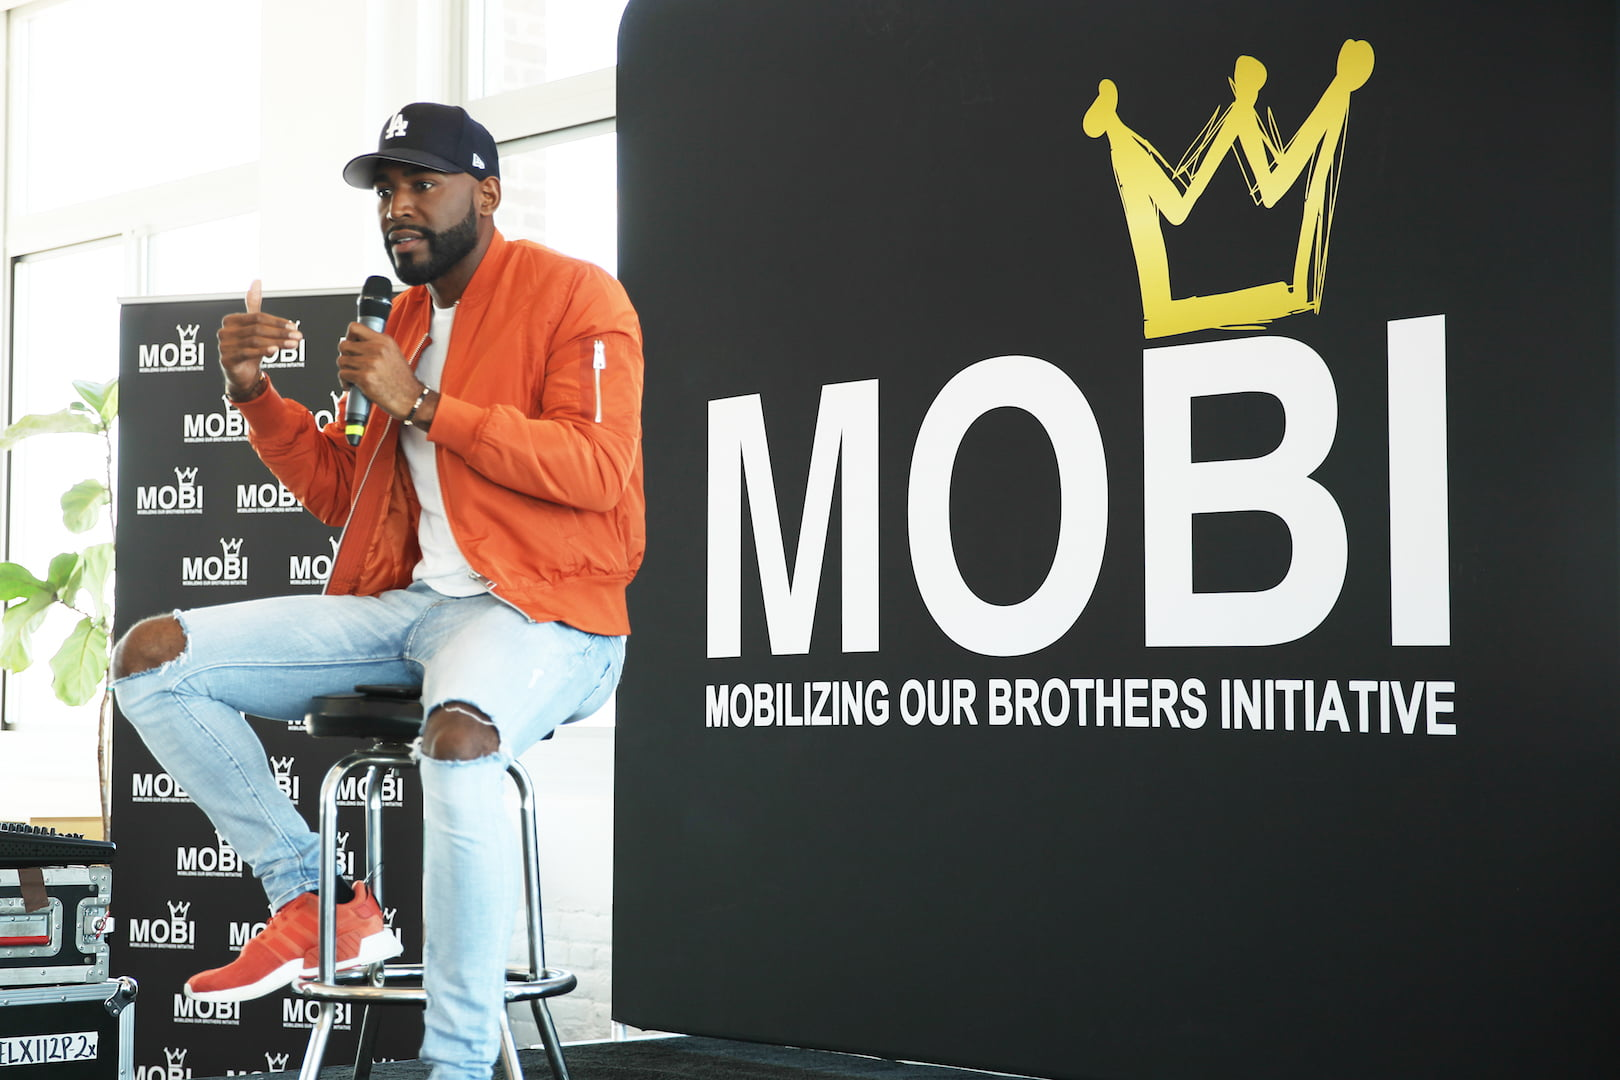 Mobilizing Our Brothers Initiative (MOBI) Brings MOBItalks to the Bronx to Empower Black Gay Men